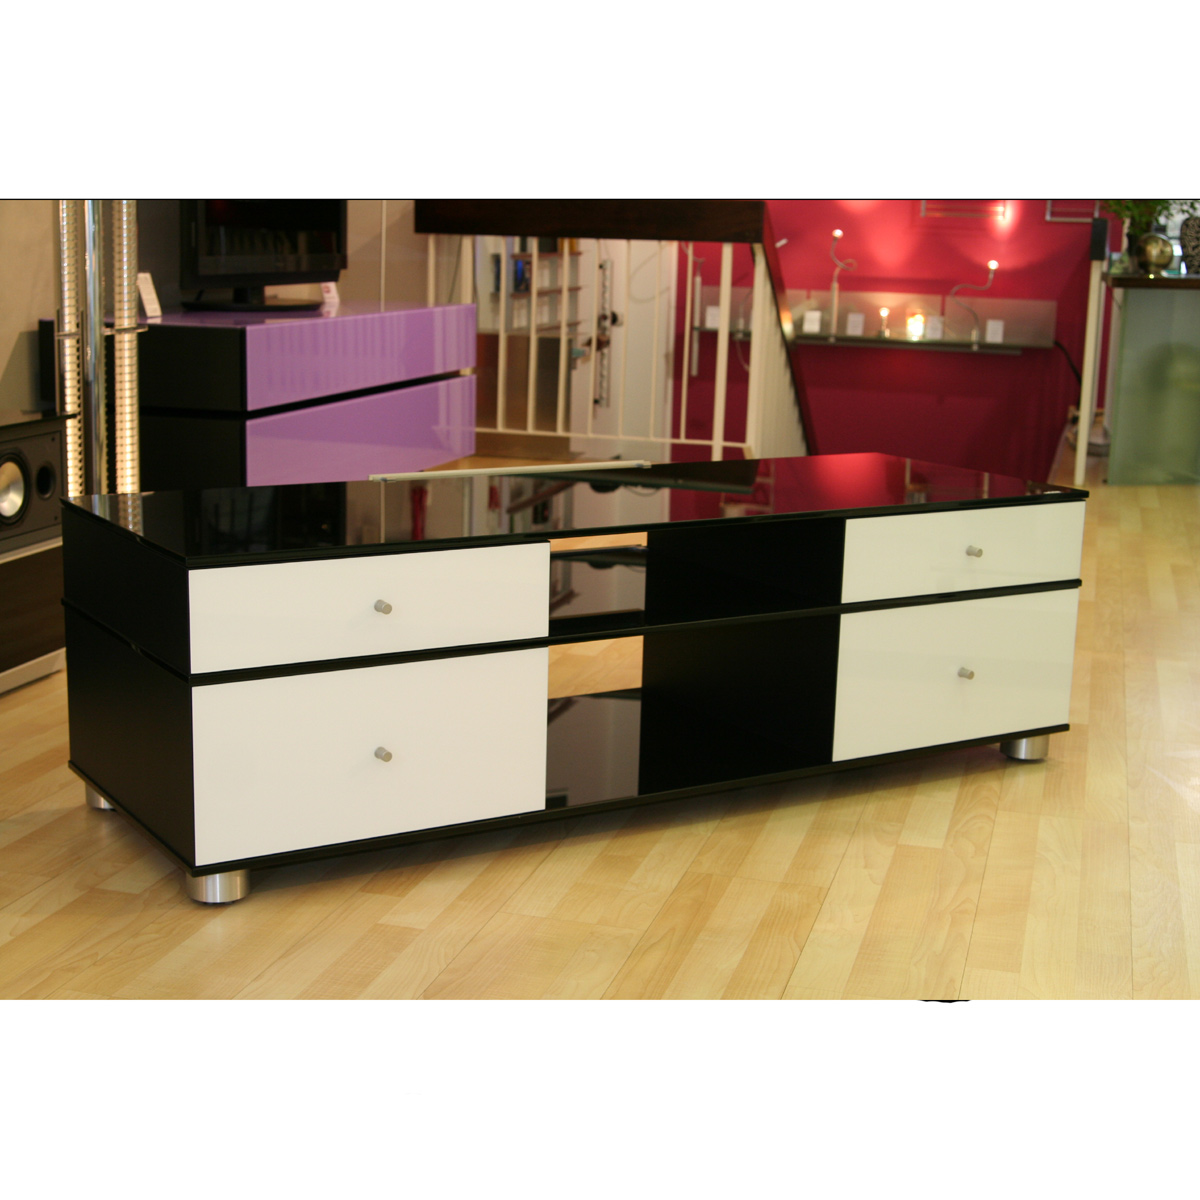 ausstellungsst cke archive tv m bel und hifi m bel guide. Black Bedroom Furniture Sets. Home Design Ideas